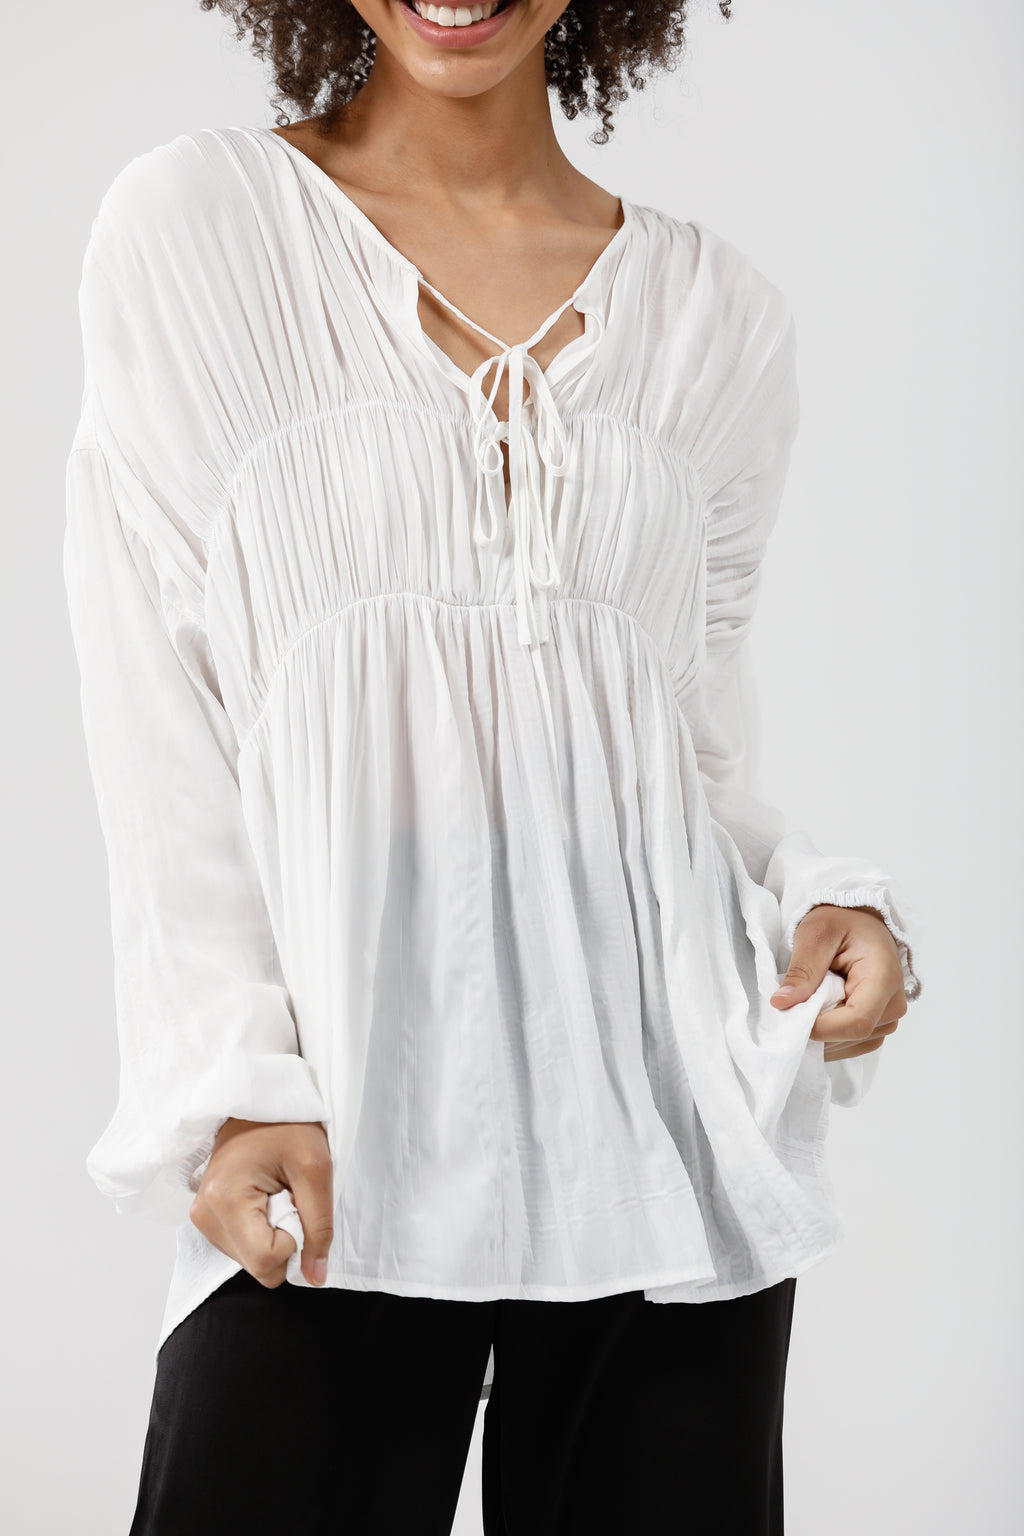 Brave & True - Arabella Shirt White